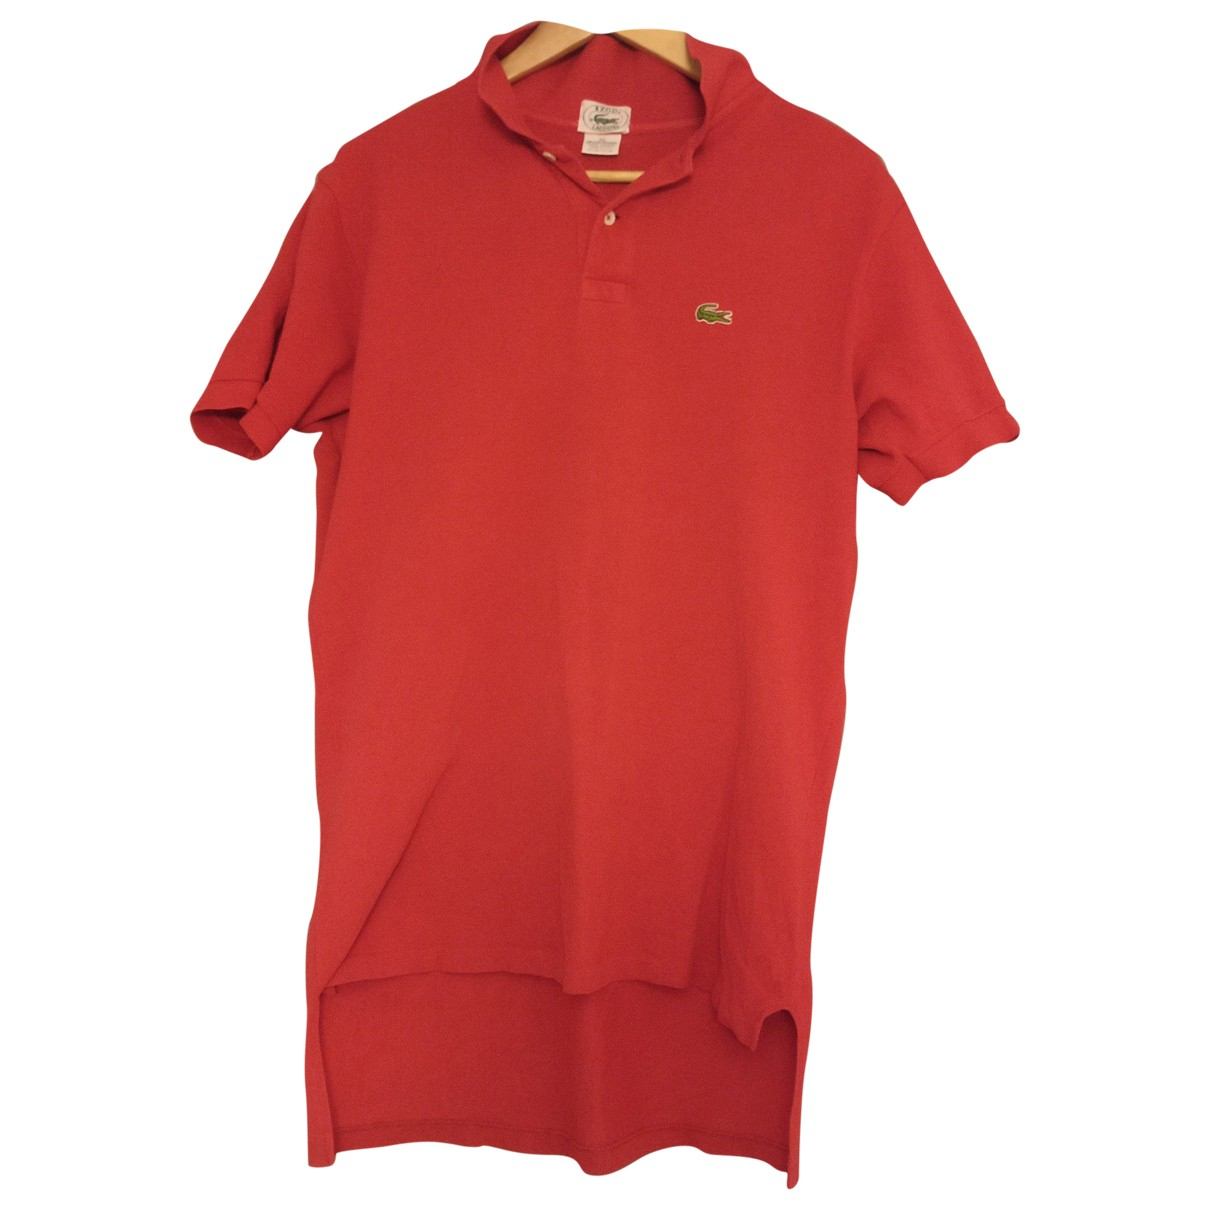 Lacoste \N Red Cotton Polo shirts for Men XL International